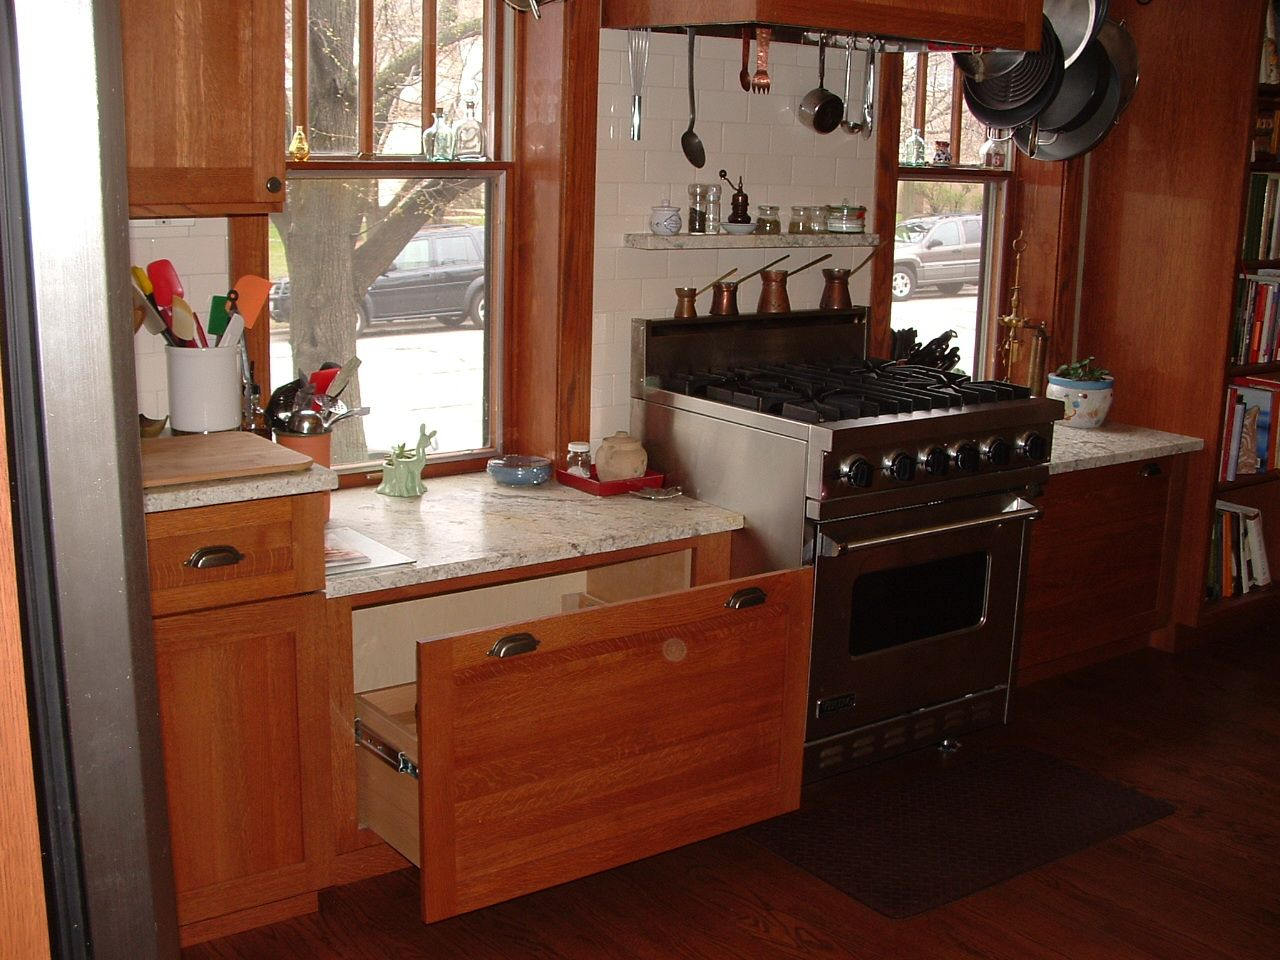 Low Windows I Have This Issue In My Kitchen I Like The Way They Ve Configured The Counters Around The Windows Kitchen Remodel Kitchen Design Kitchen Window